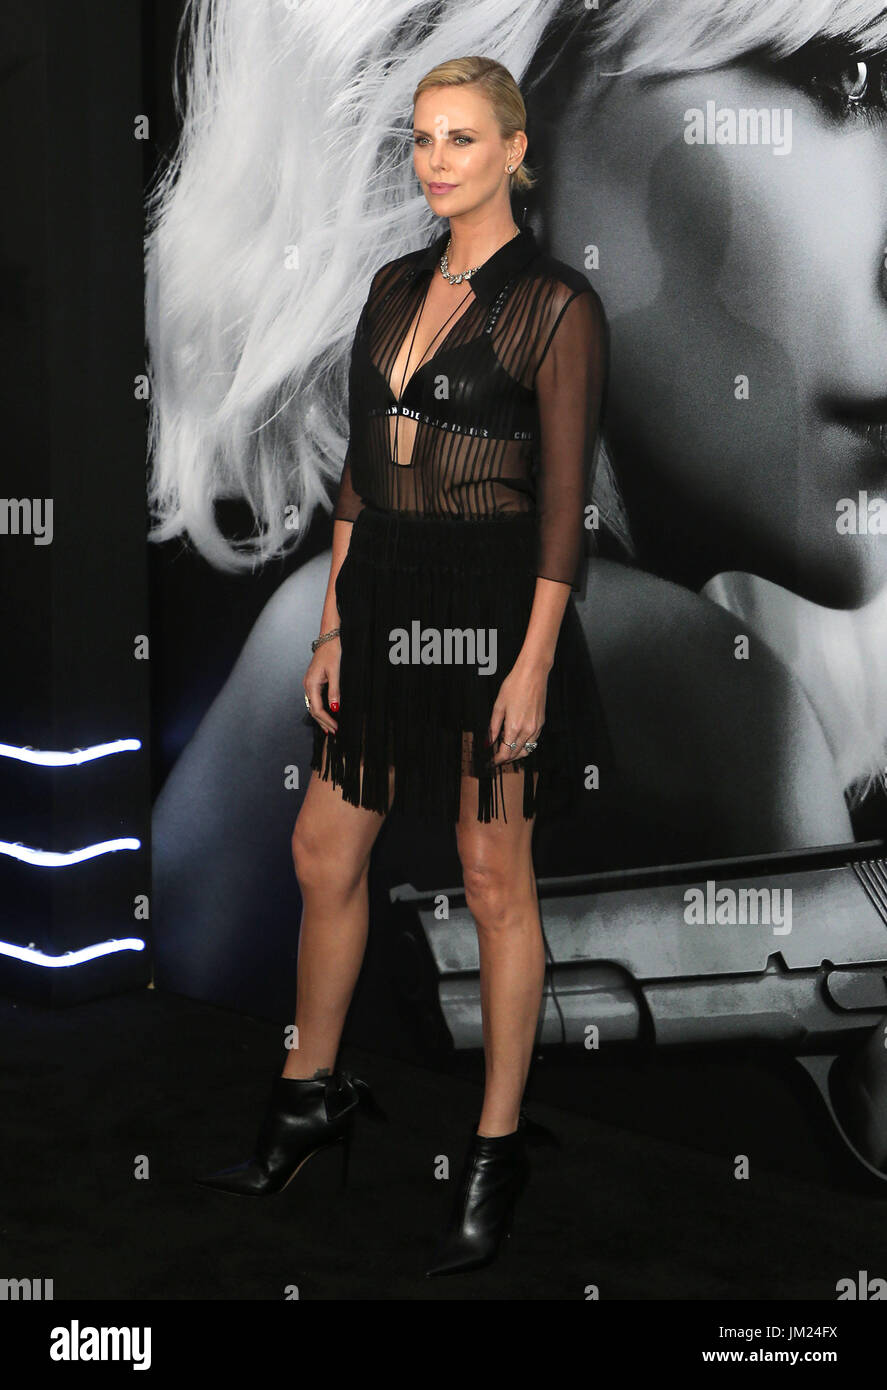 July 24, 2017 - Los Angeles, U.S. - 24 July 2017 - Los Angeles, California - Charlize Theron. ''Atomic Blonde'' - Stock Image